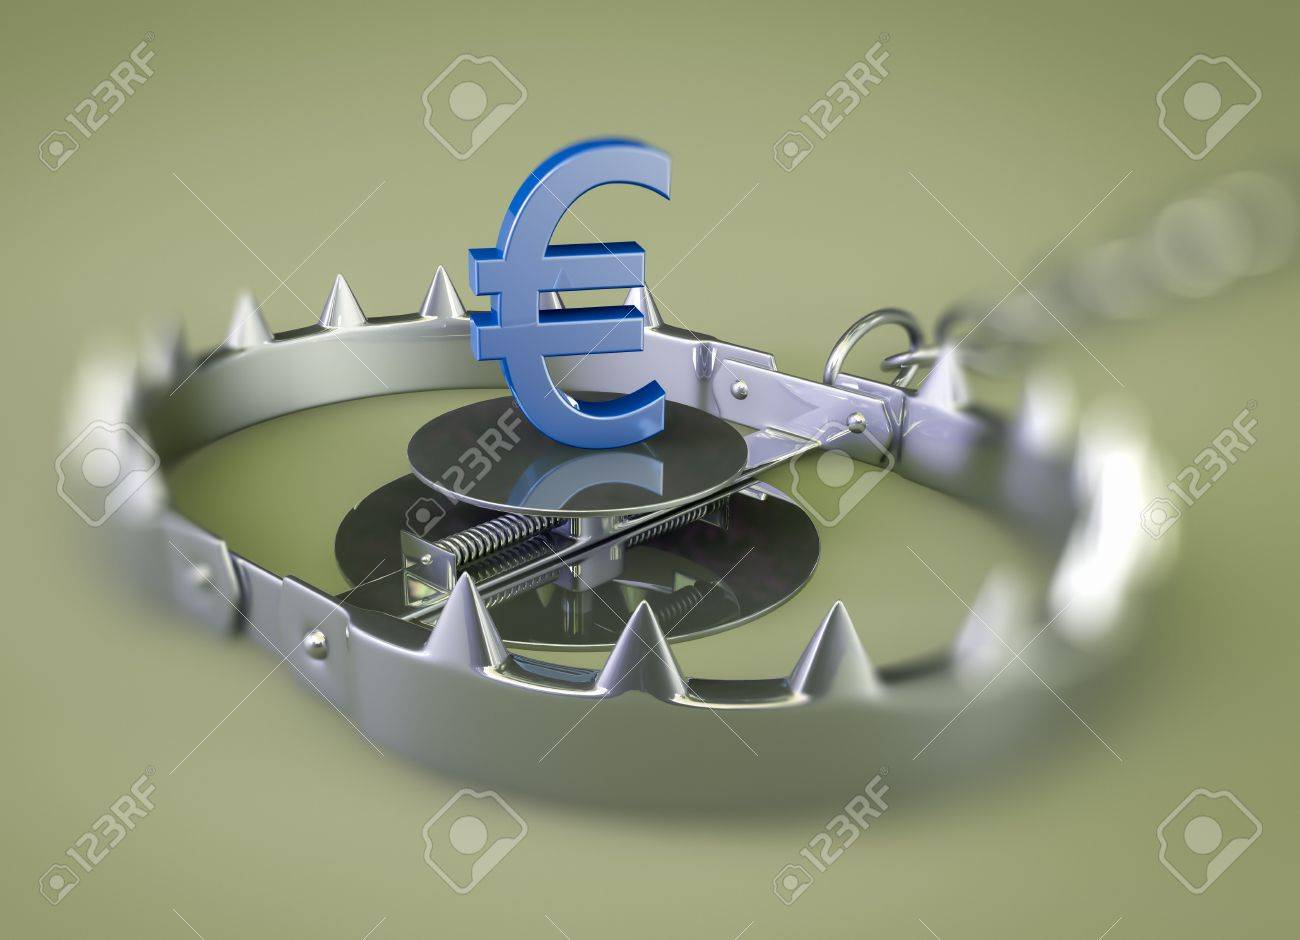 render of a bear trap with euro lure Stock Photo - 15923003